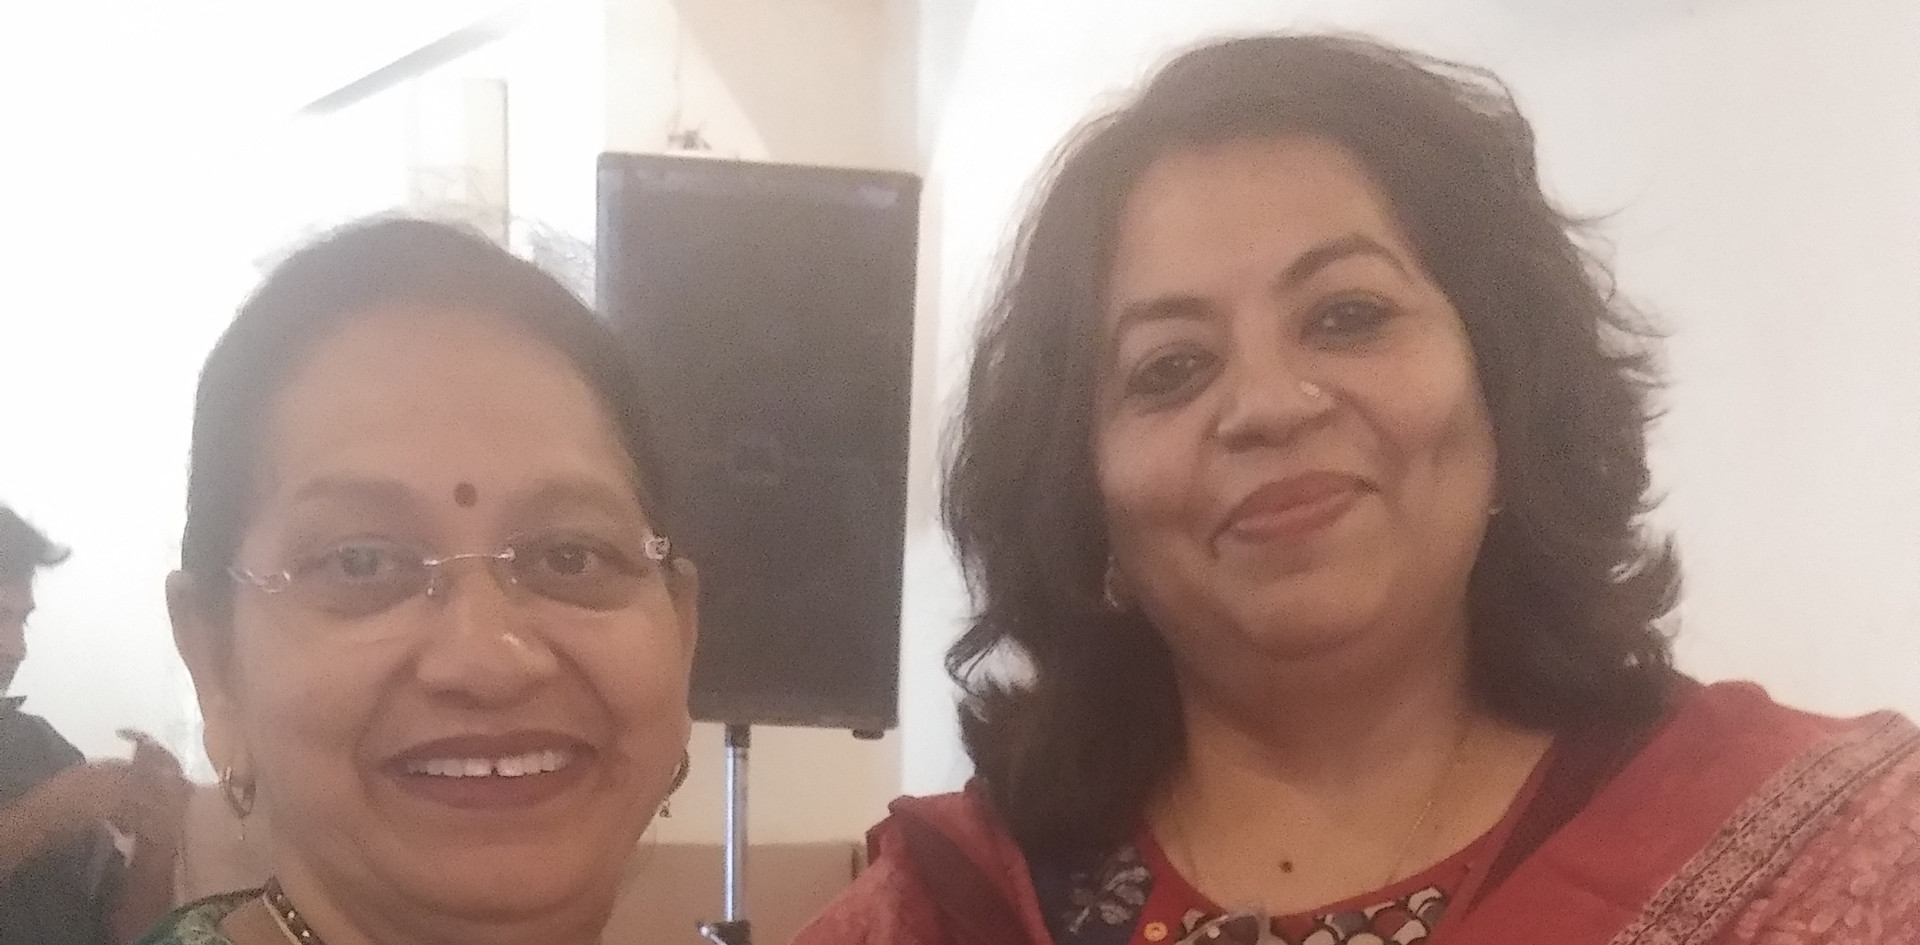 Ms. Veena Gaur, Chairperson, Blub World sharing a light moment with Ms. Suchorita Bardhan, Communication Specialist, UNICEF India